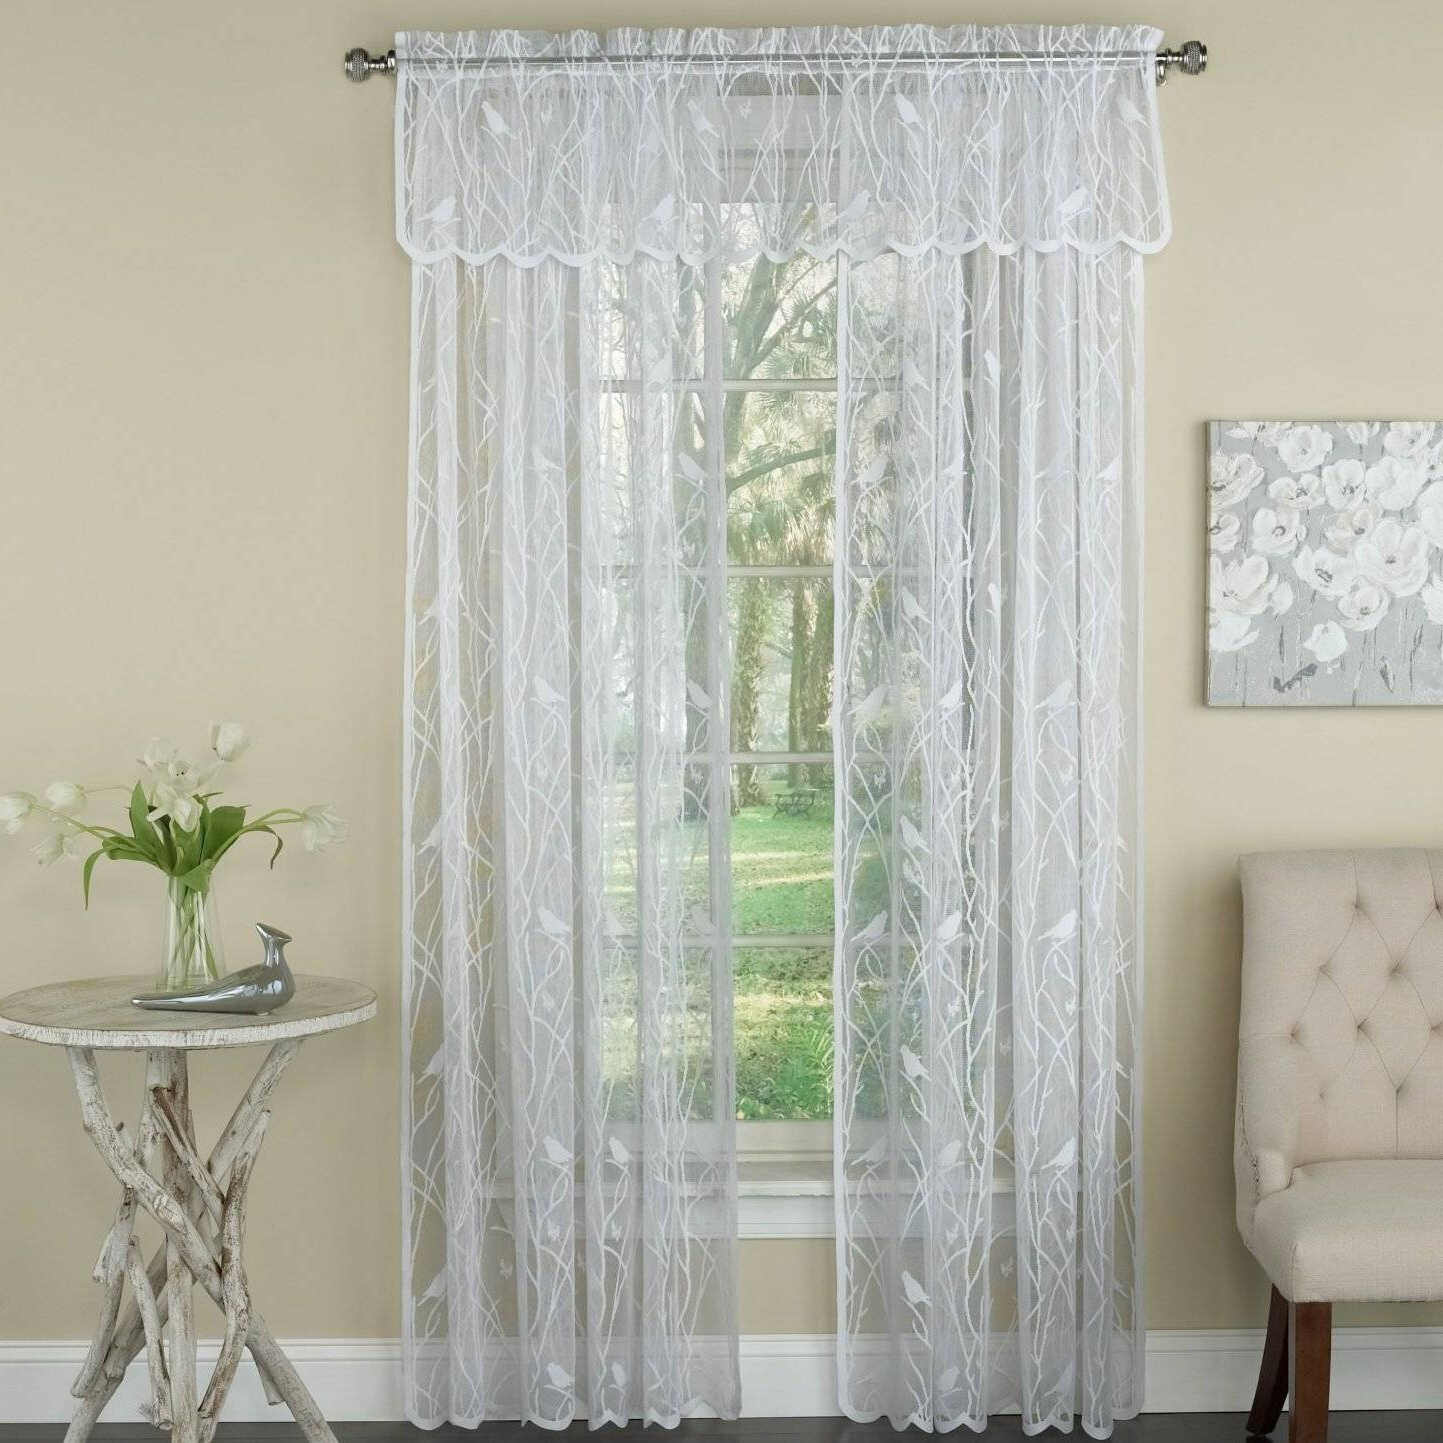 Luxurious Kitchen Curtains Tiers, Shade Or Valances Throughout Most Recently Released Curtain Valances And Tiers Kitchen Curtains Valance White (View 15 of 20)